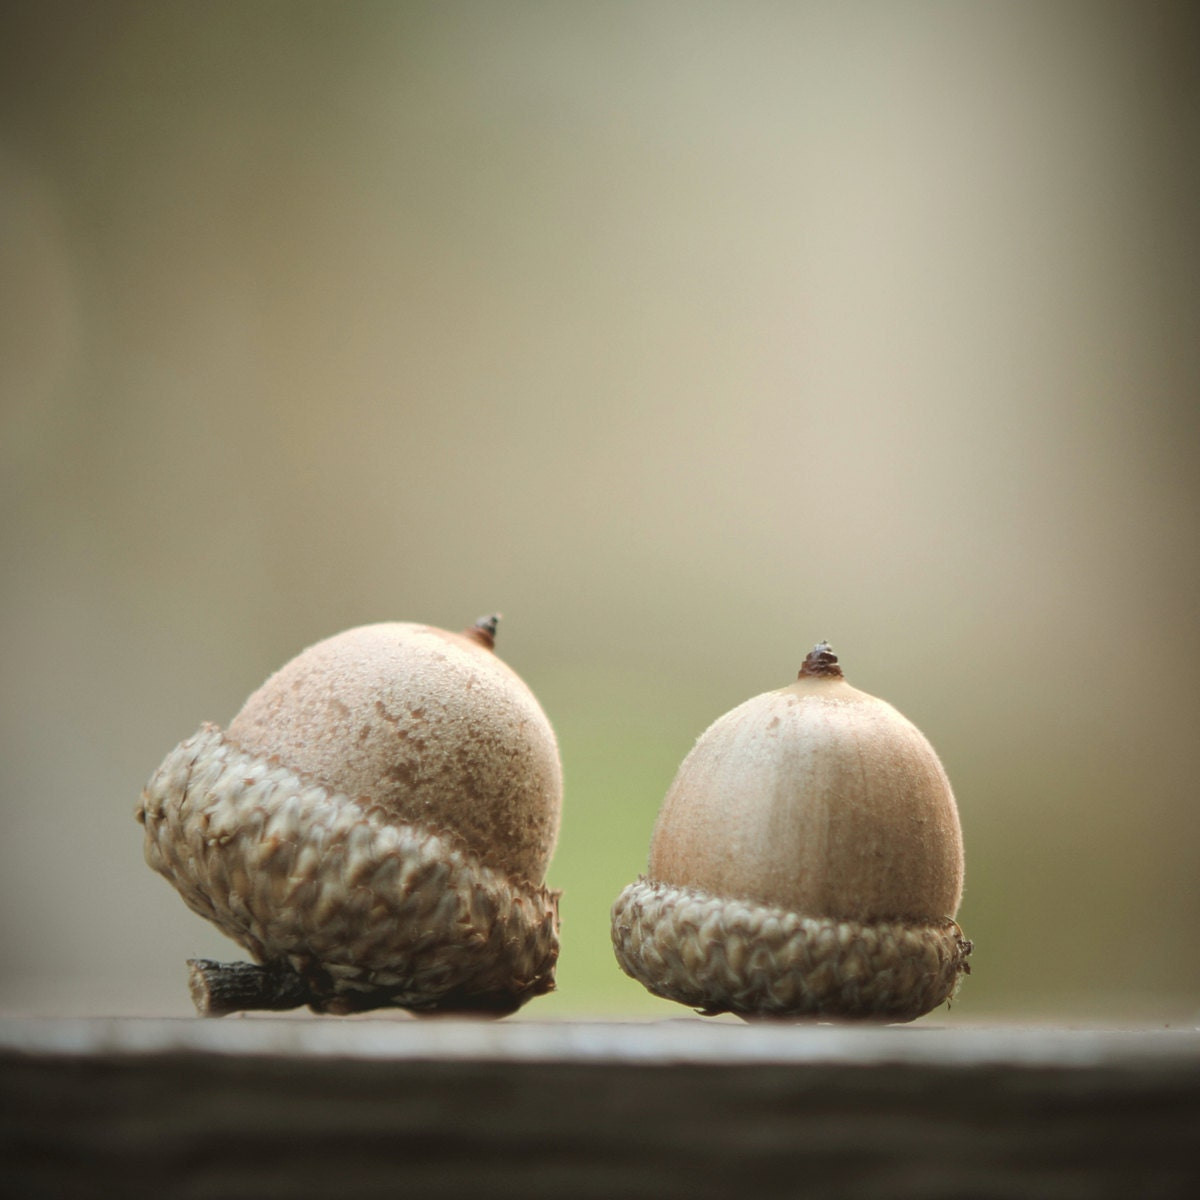 Two Acorns 8 x 8 Photograph - Fine Art Print - Fall Decor - Autumn - Trees - Wall Art - Home Office Decor - TommieSPhoto